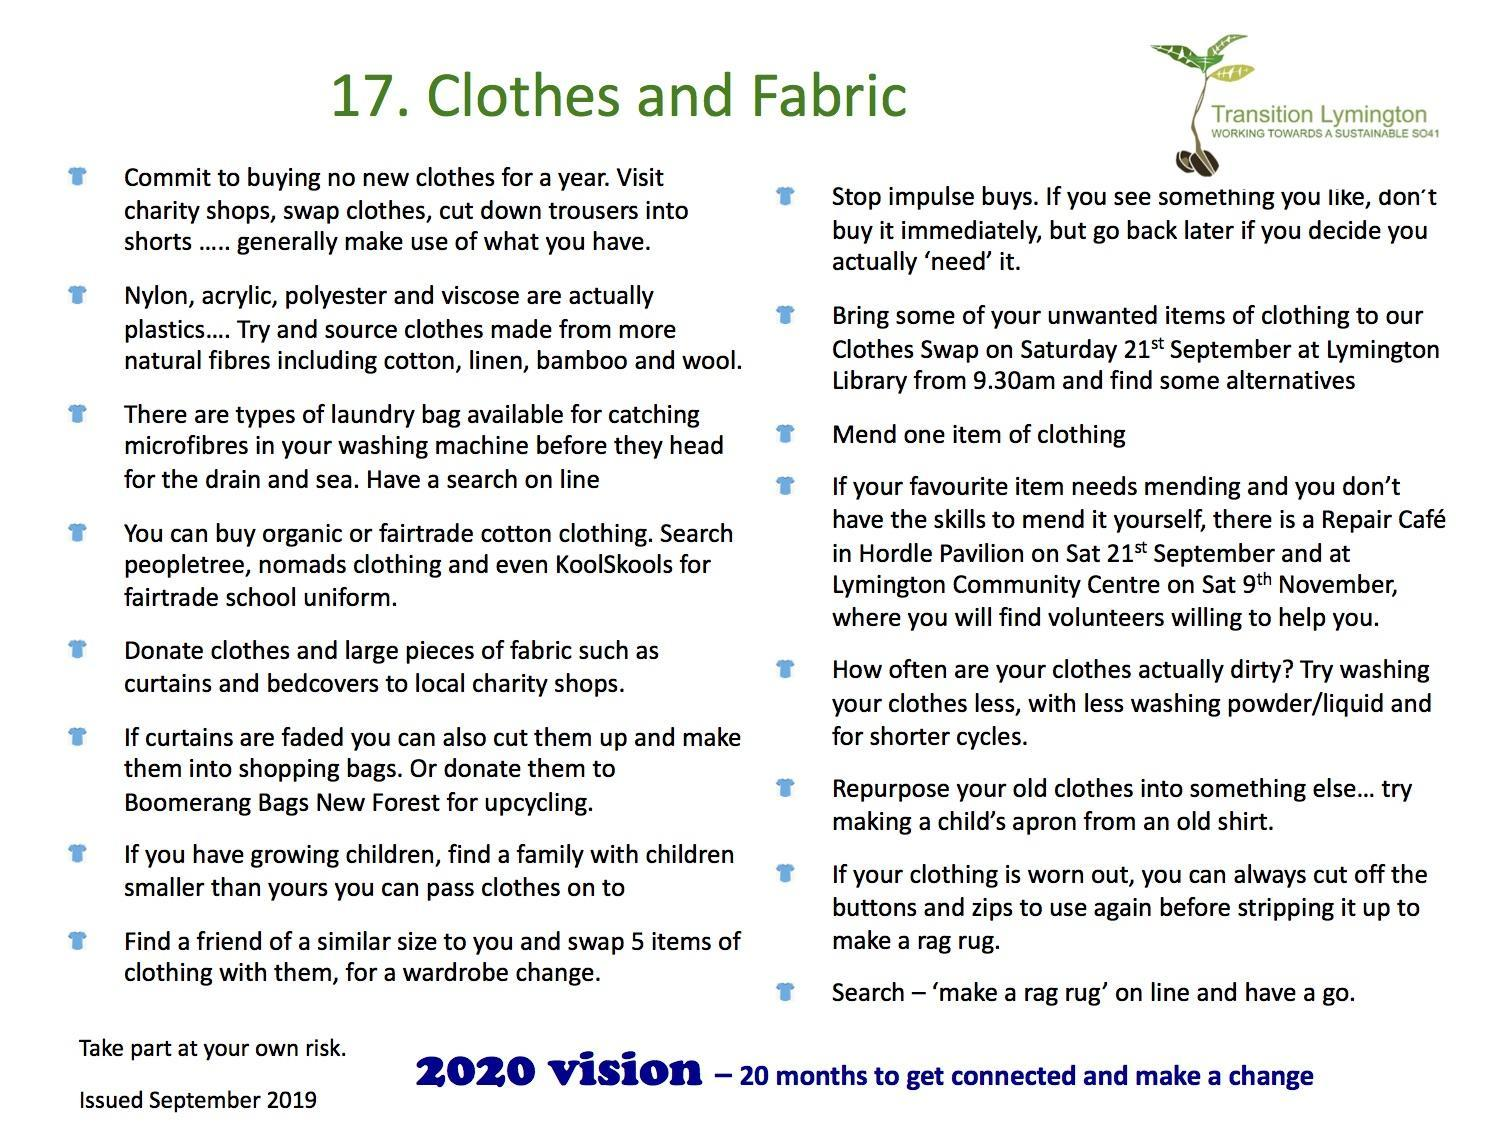 2020 Vision - Lymington Transition challenge us to think about Clothes and Fabric